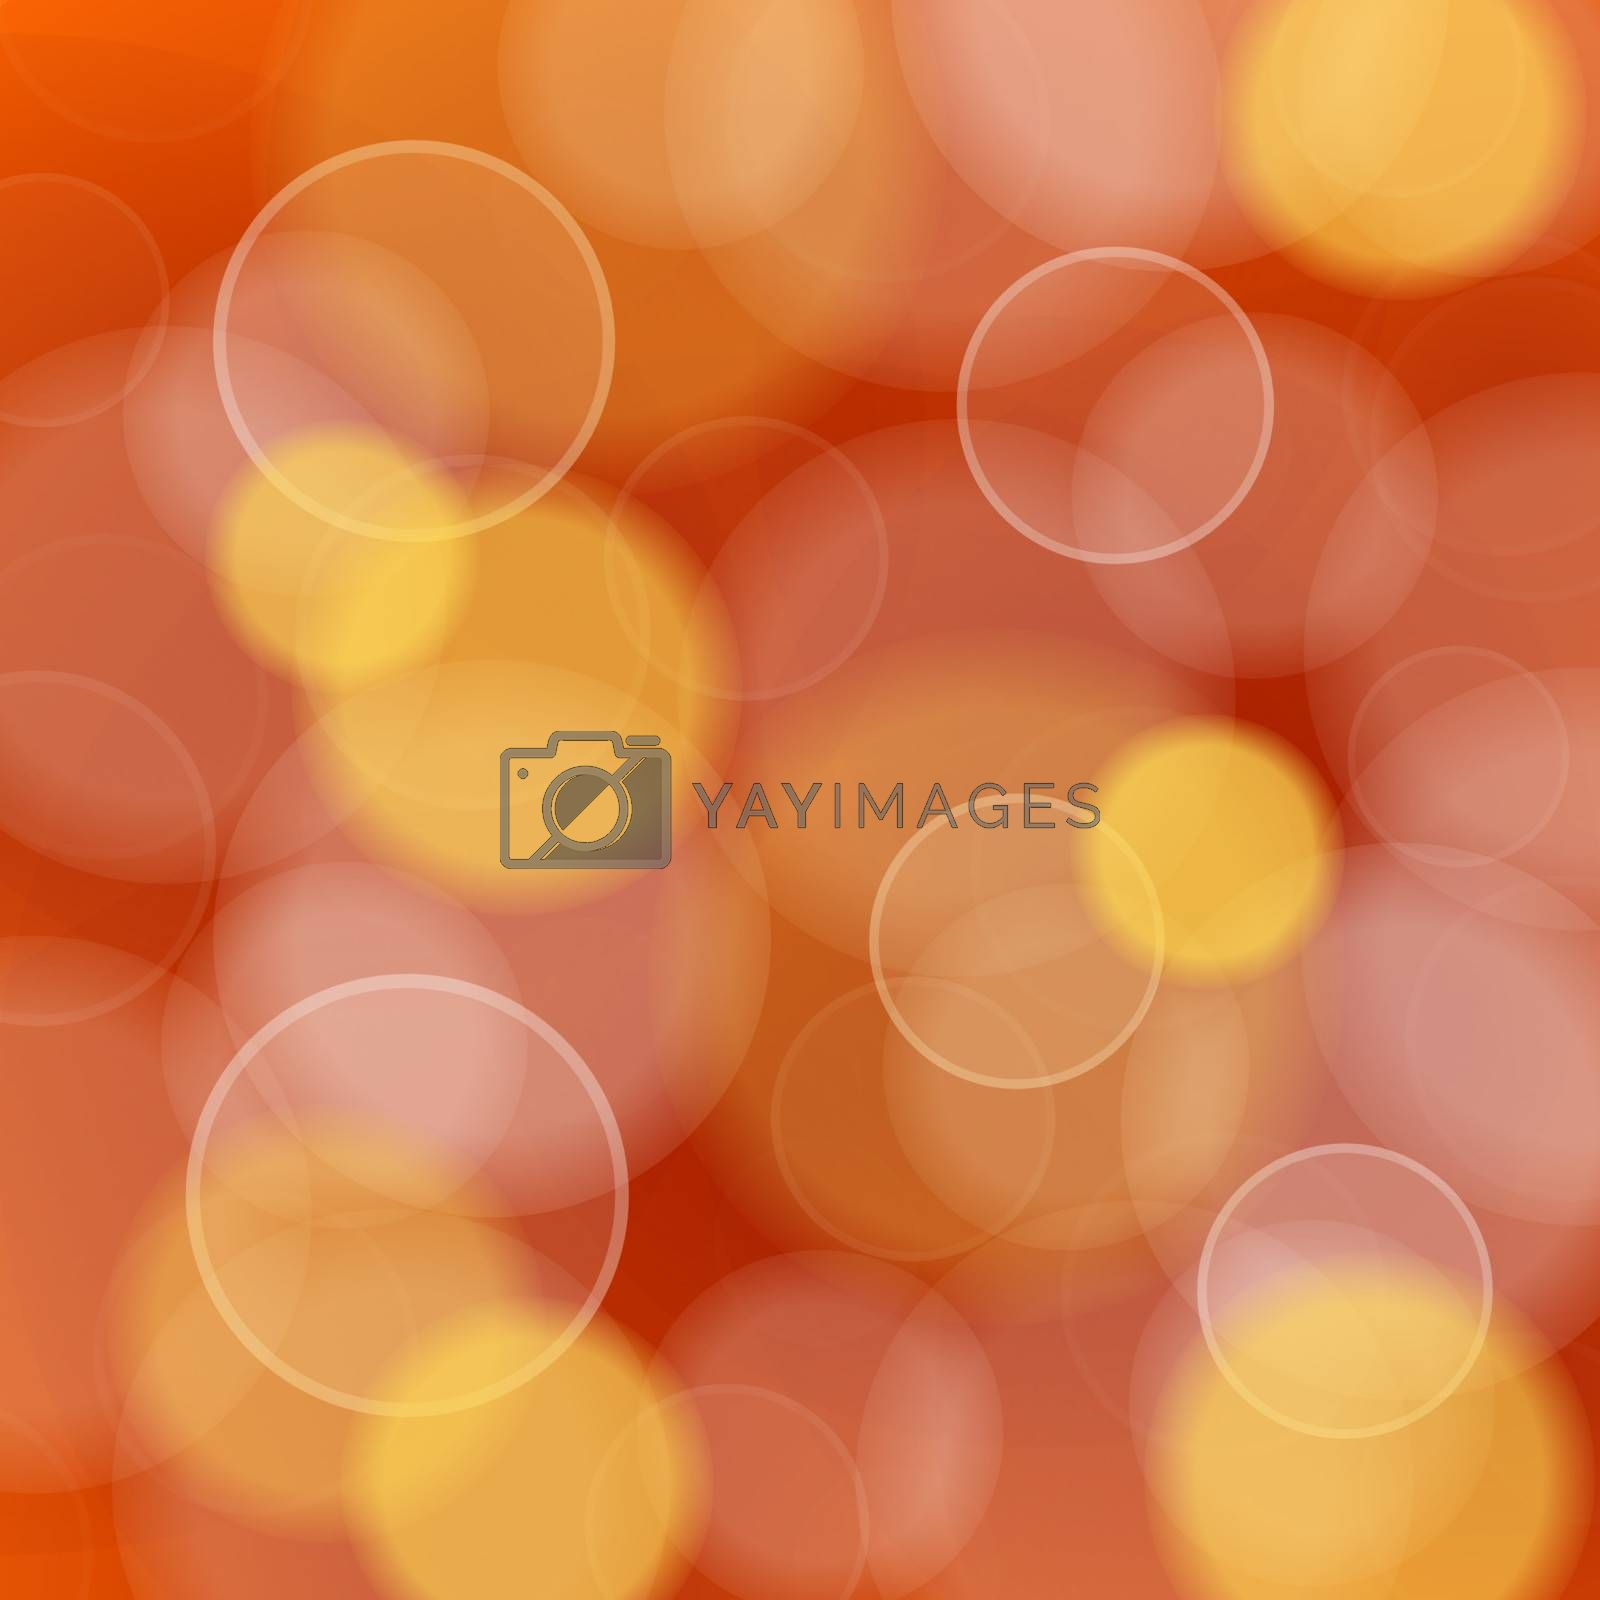 Vector Illustration of bokeh circles in red and orange tones